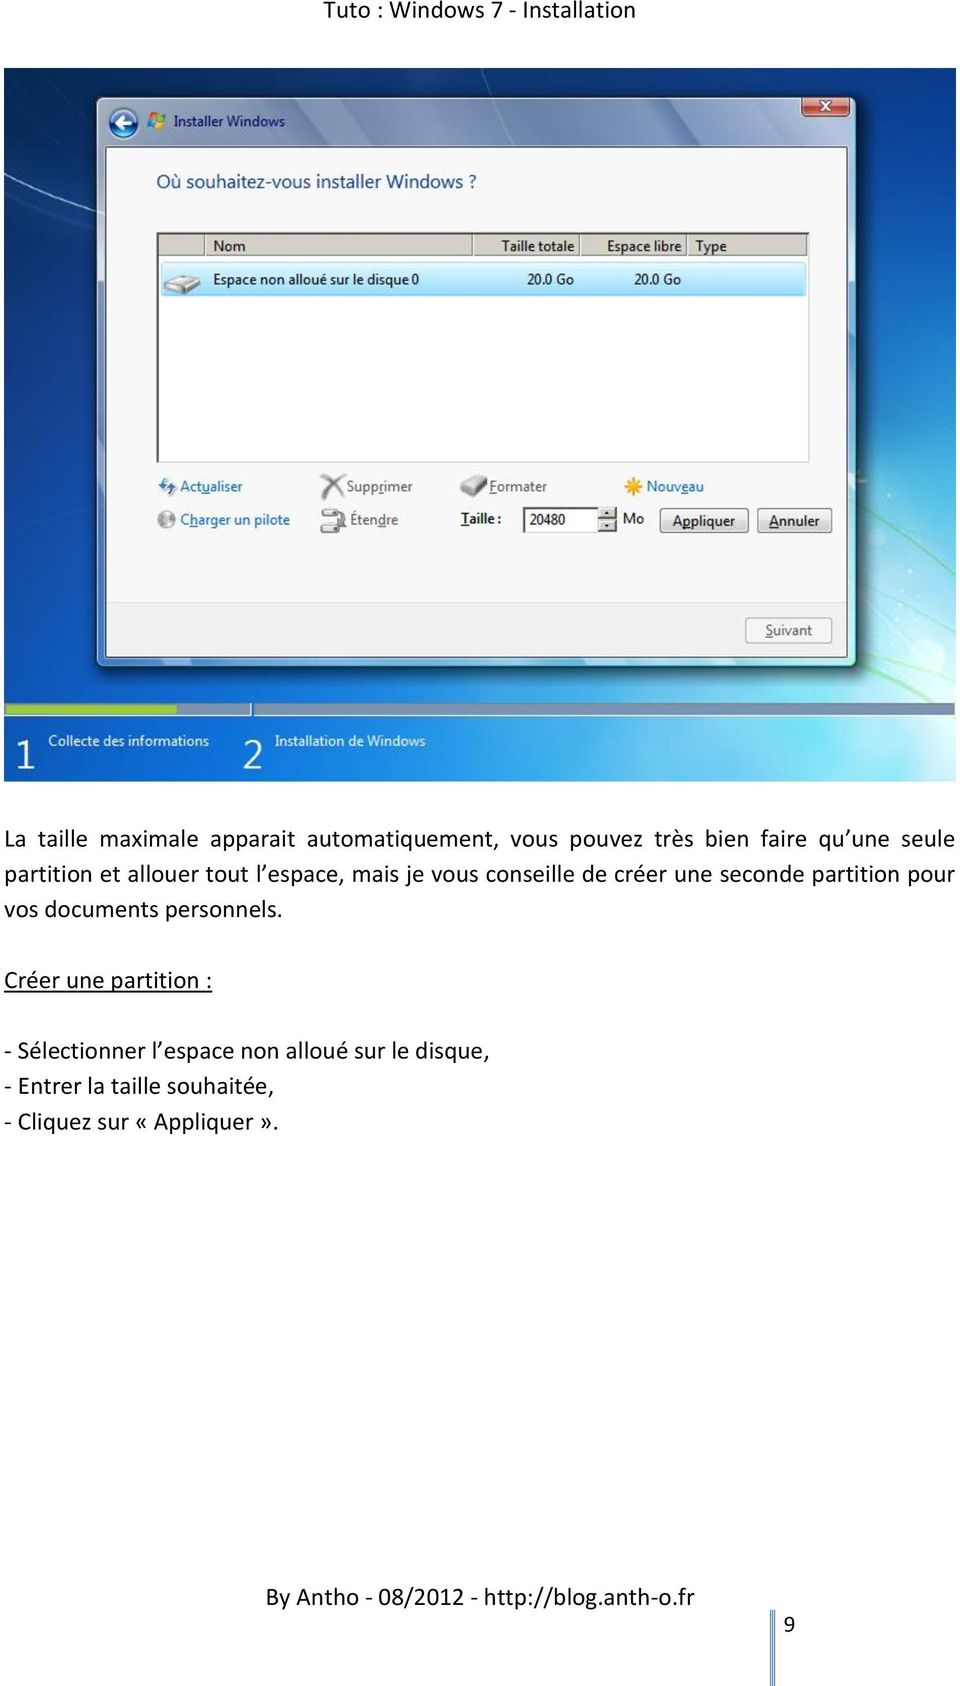 seconde partition pour vos documents personnels.